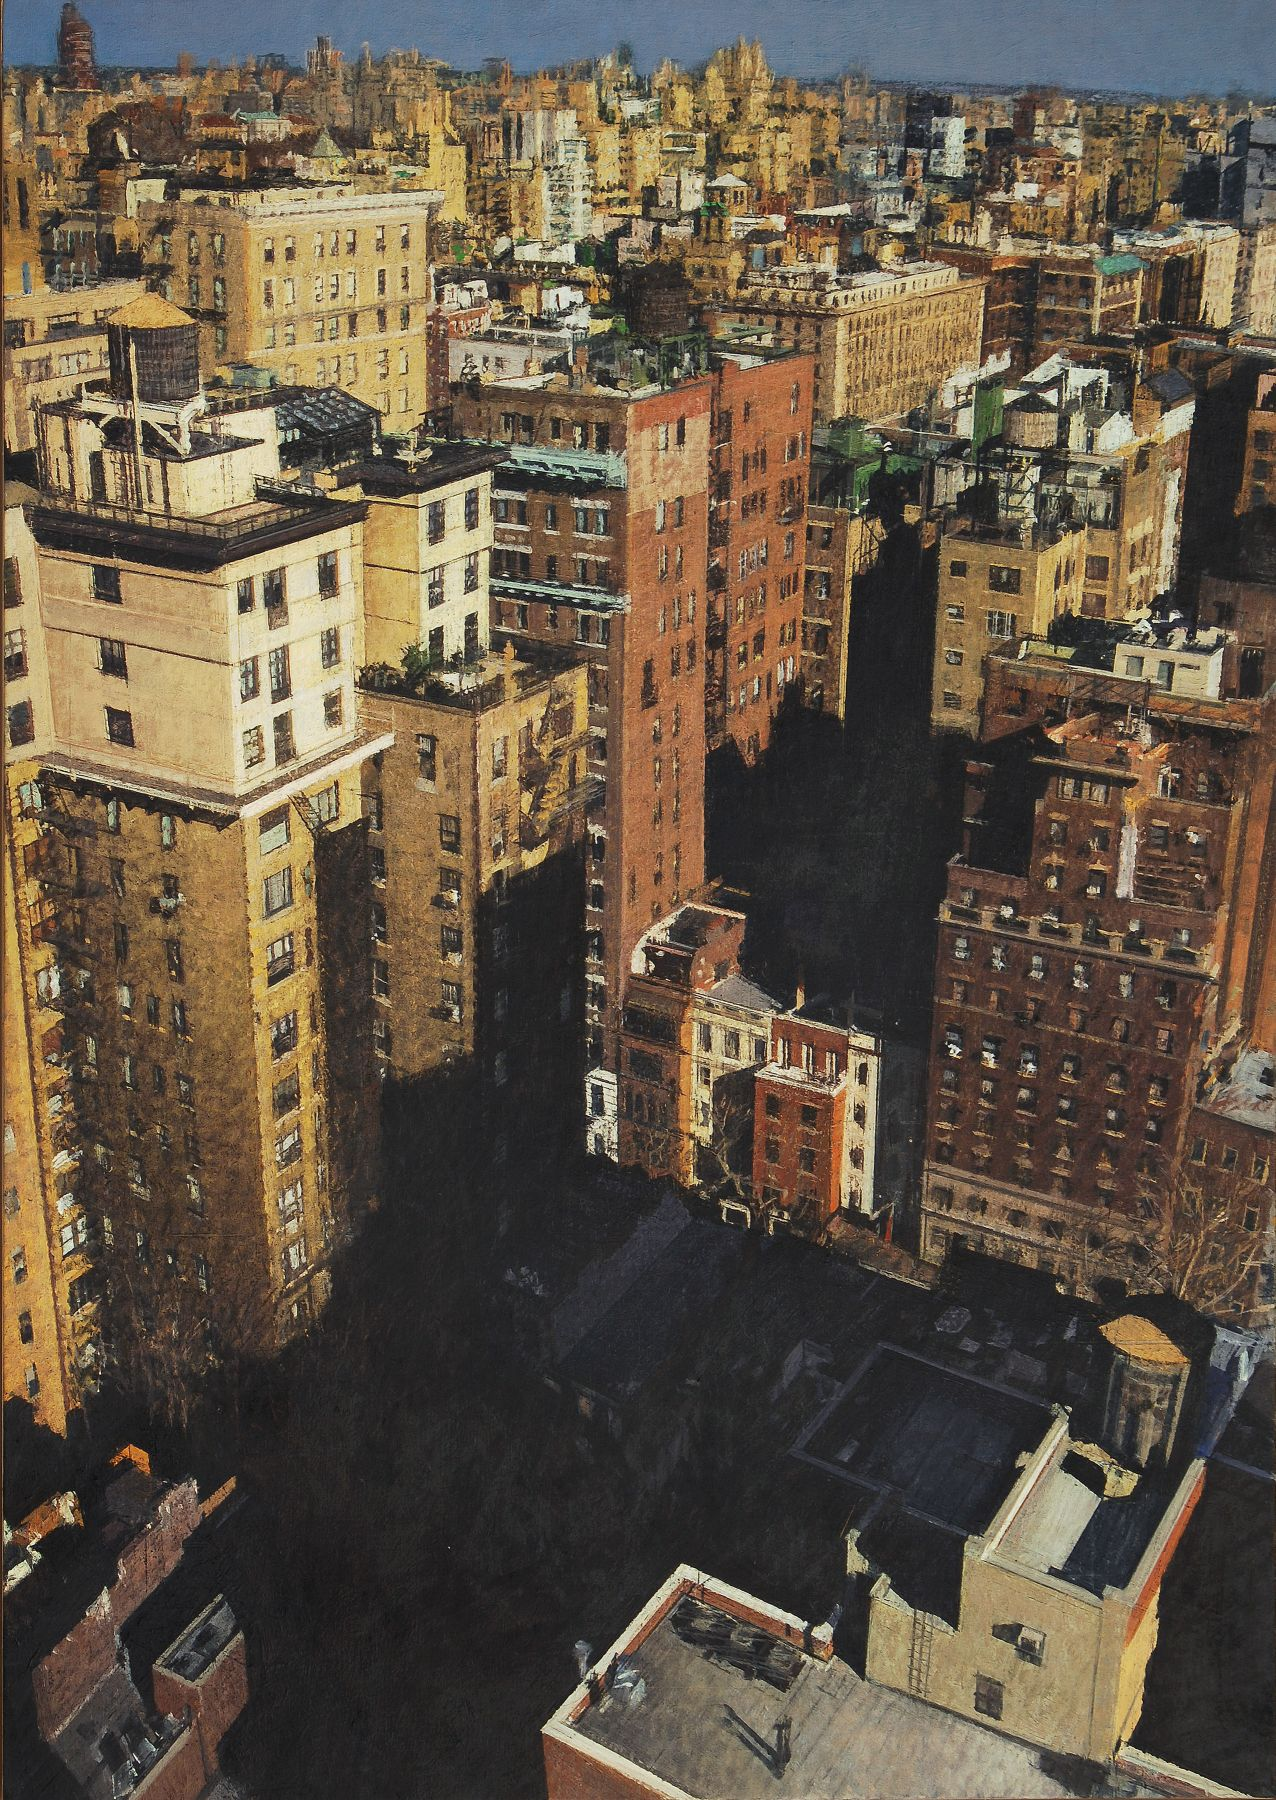 Bernardo Siciliano, Naked City #2 (SOLD), 2009, oil on canvas, 45 1/4 x 31 5/8 inches